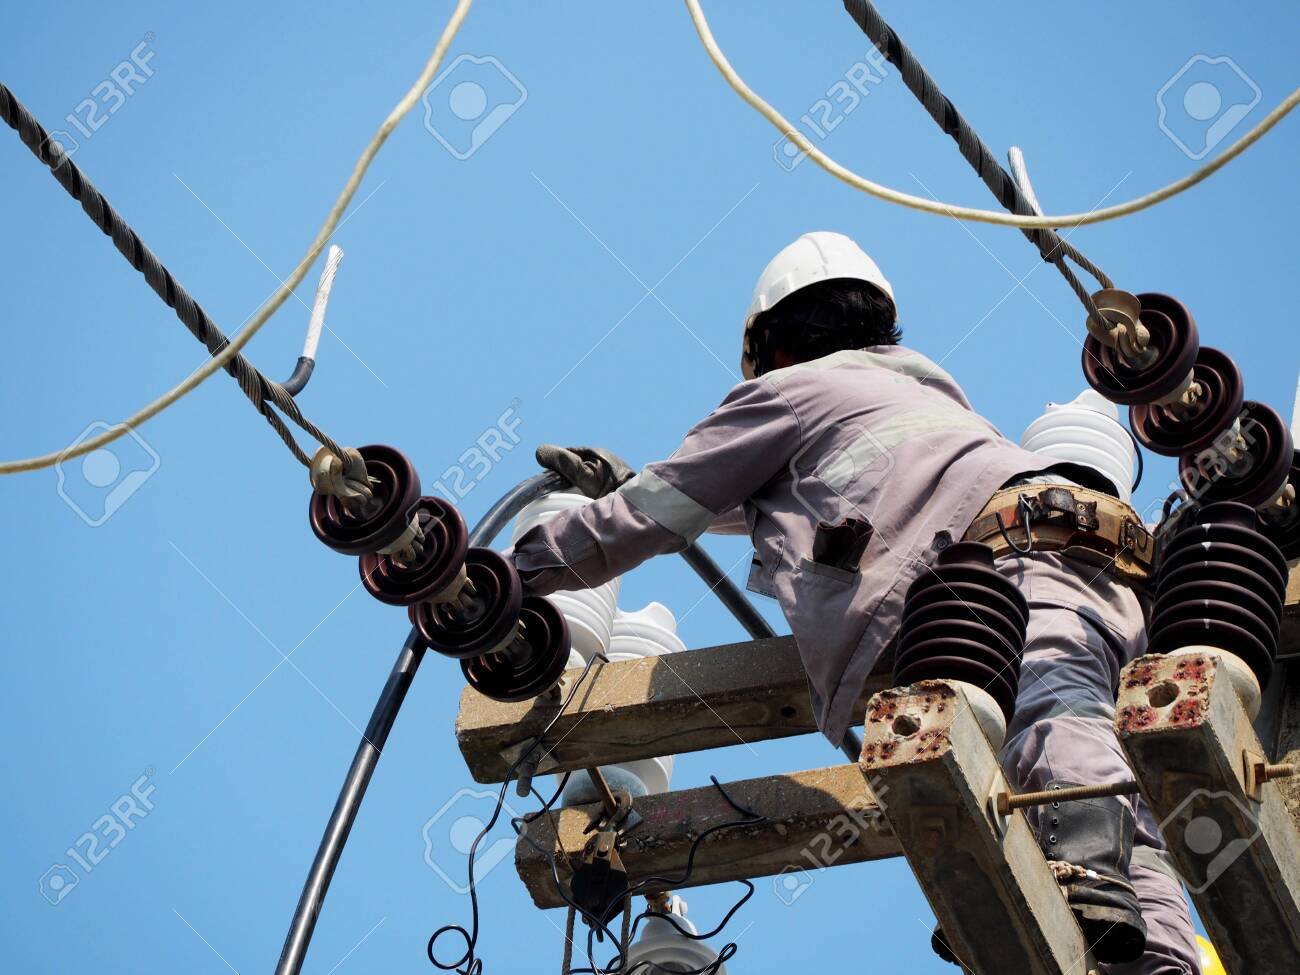 electrician man working at height and dangerous ,high voltage power line maintenance - 145604426